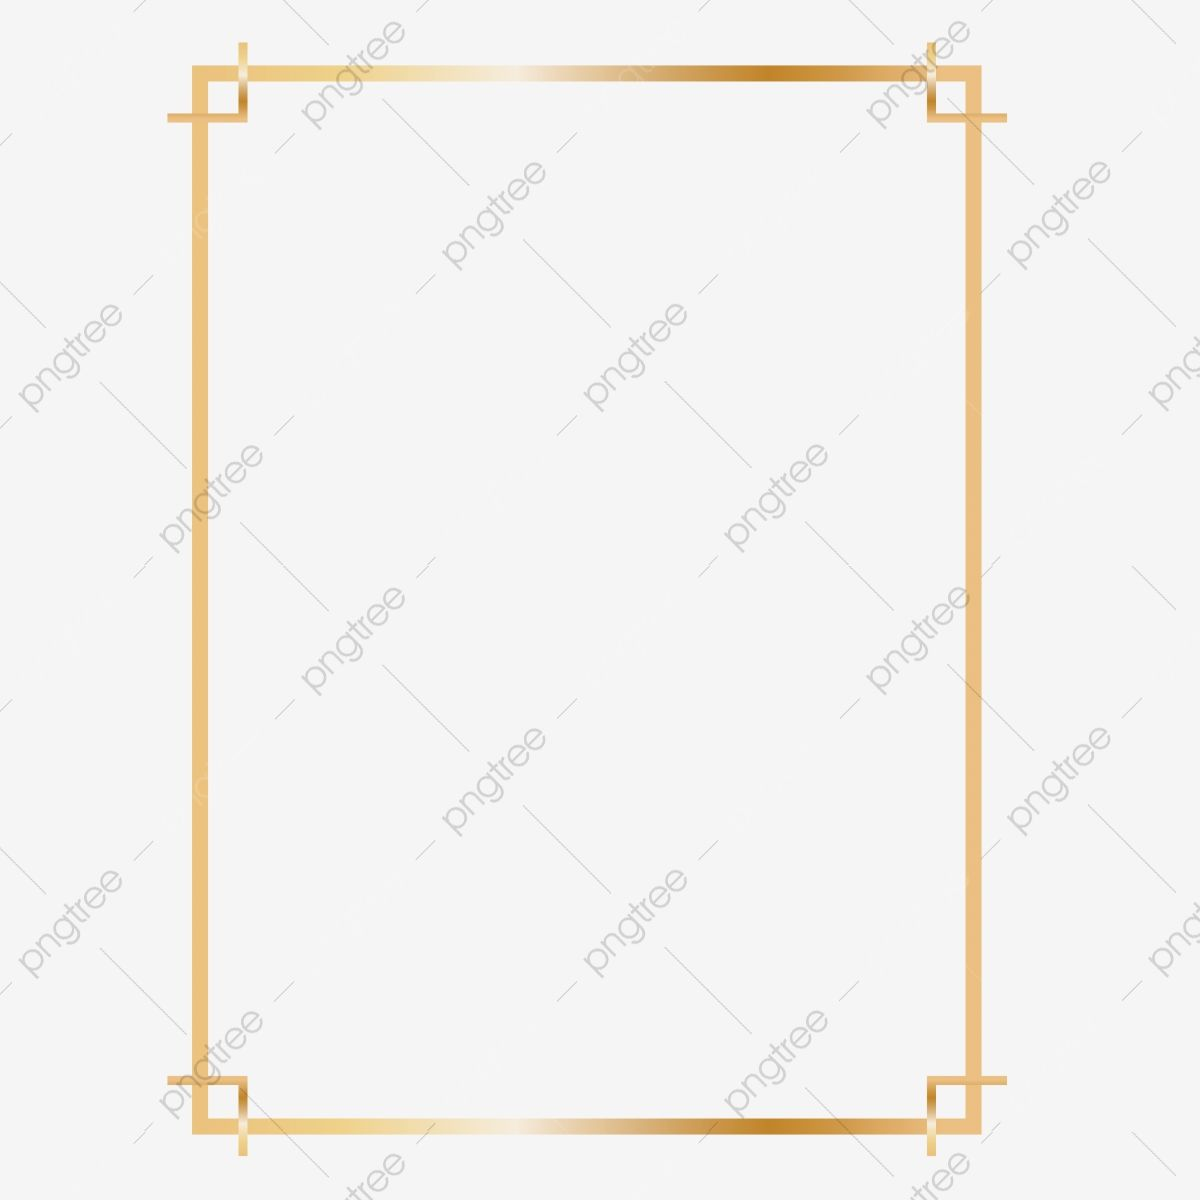 Download This Golden Rectangle Frame Design Clipart Png Rectangle Rectangle Frame Rectangle Gold Frame Transparent Png O Frame Design Frame Clipart Clip Art